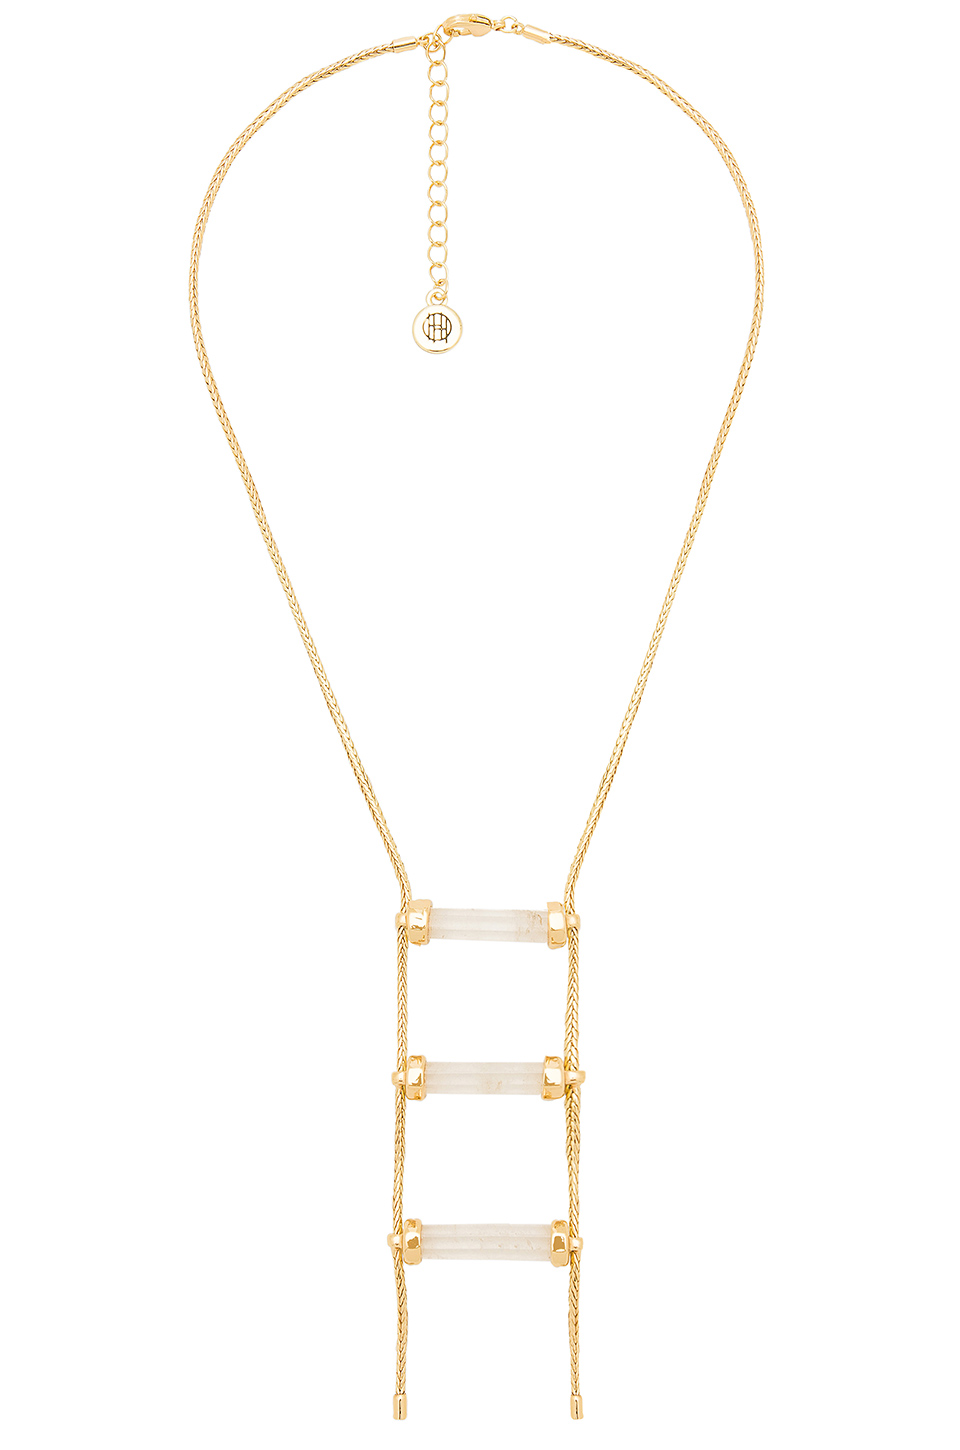 House of Harlow 1960 Triple Crystal Necklace in Gold & Clear